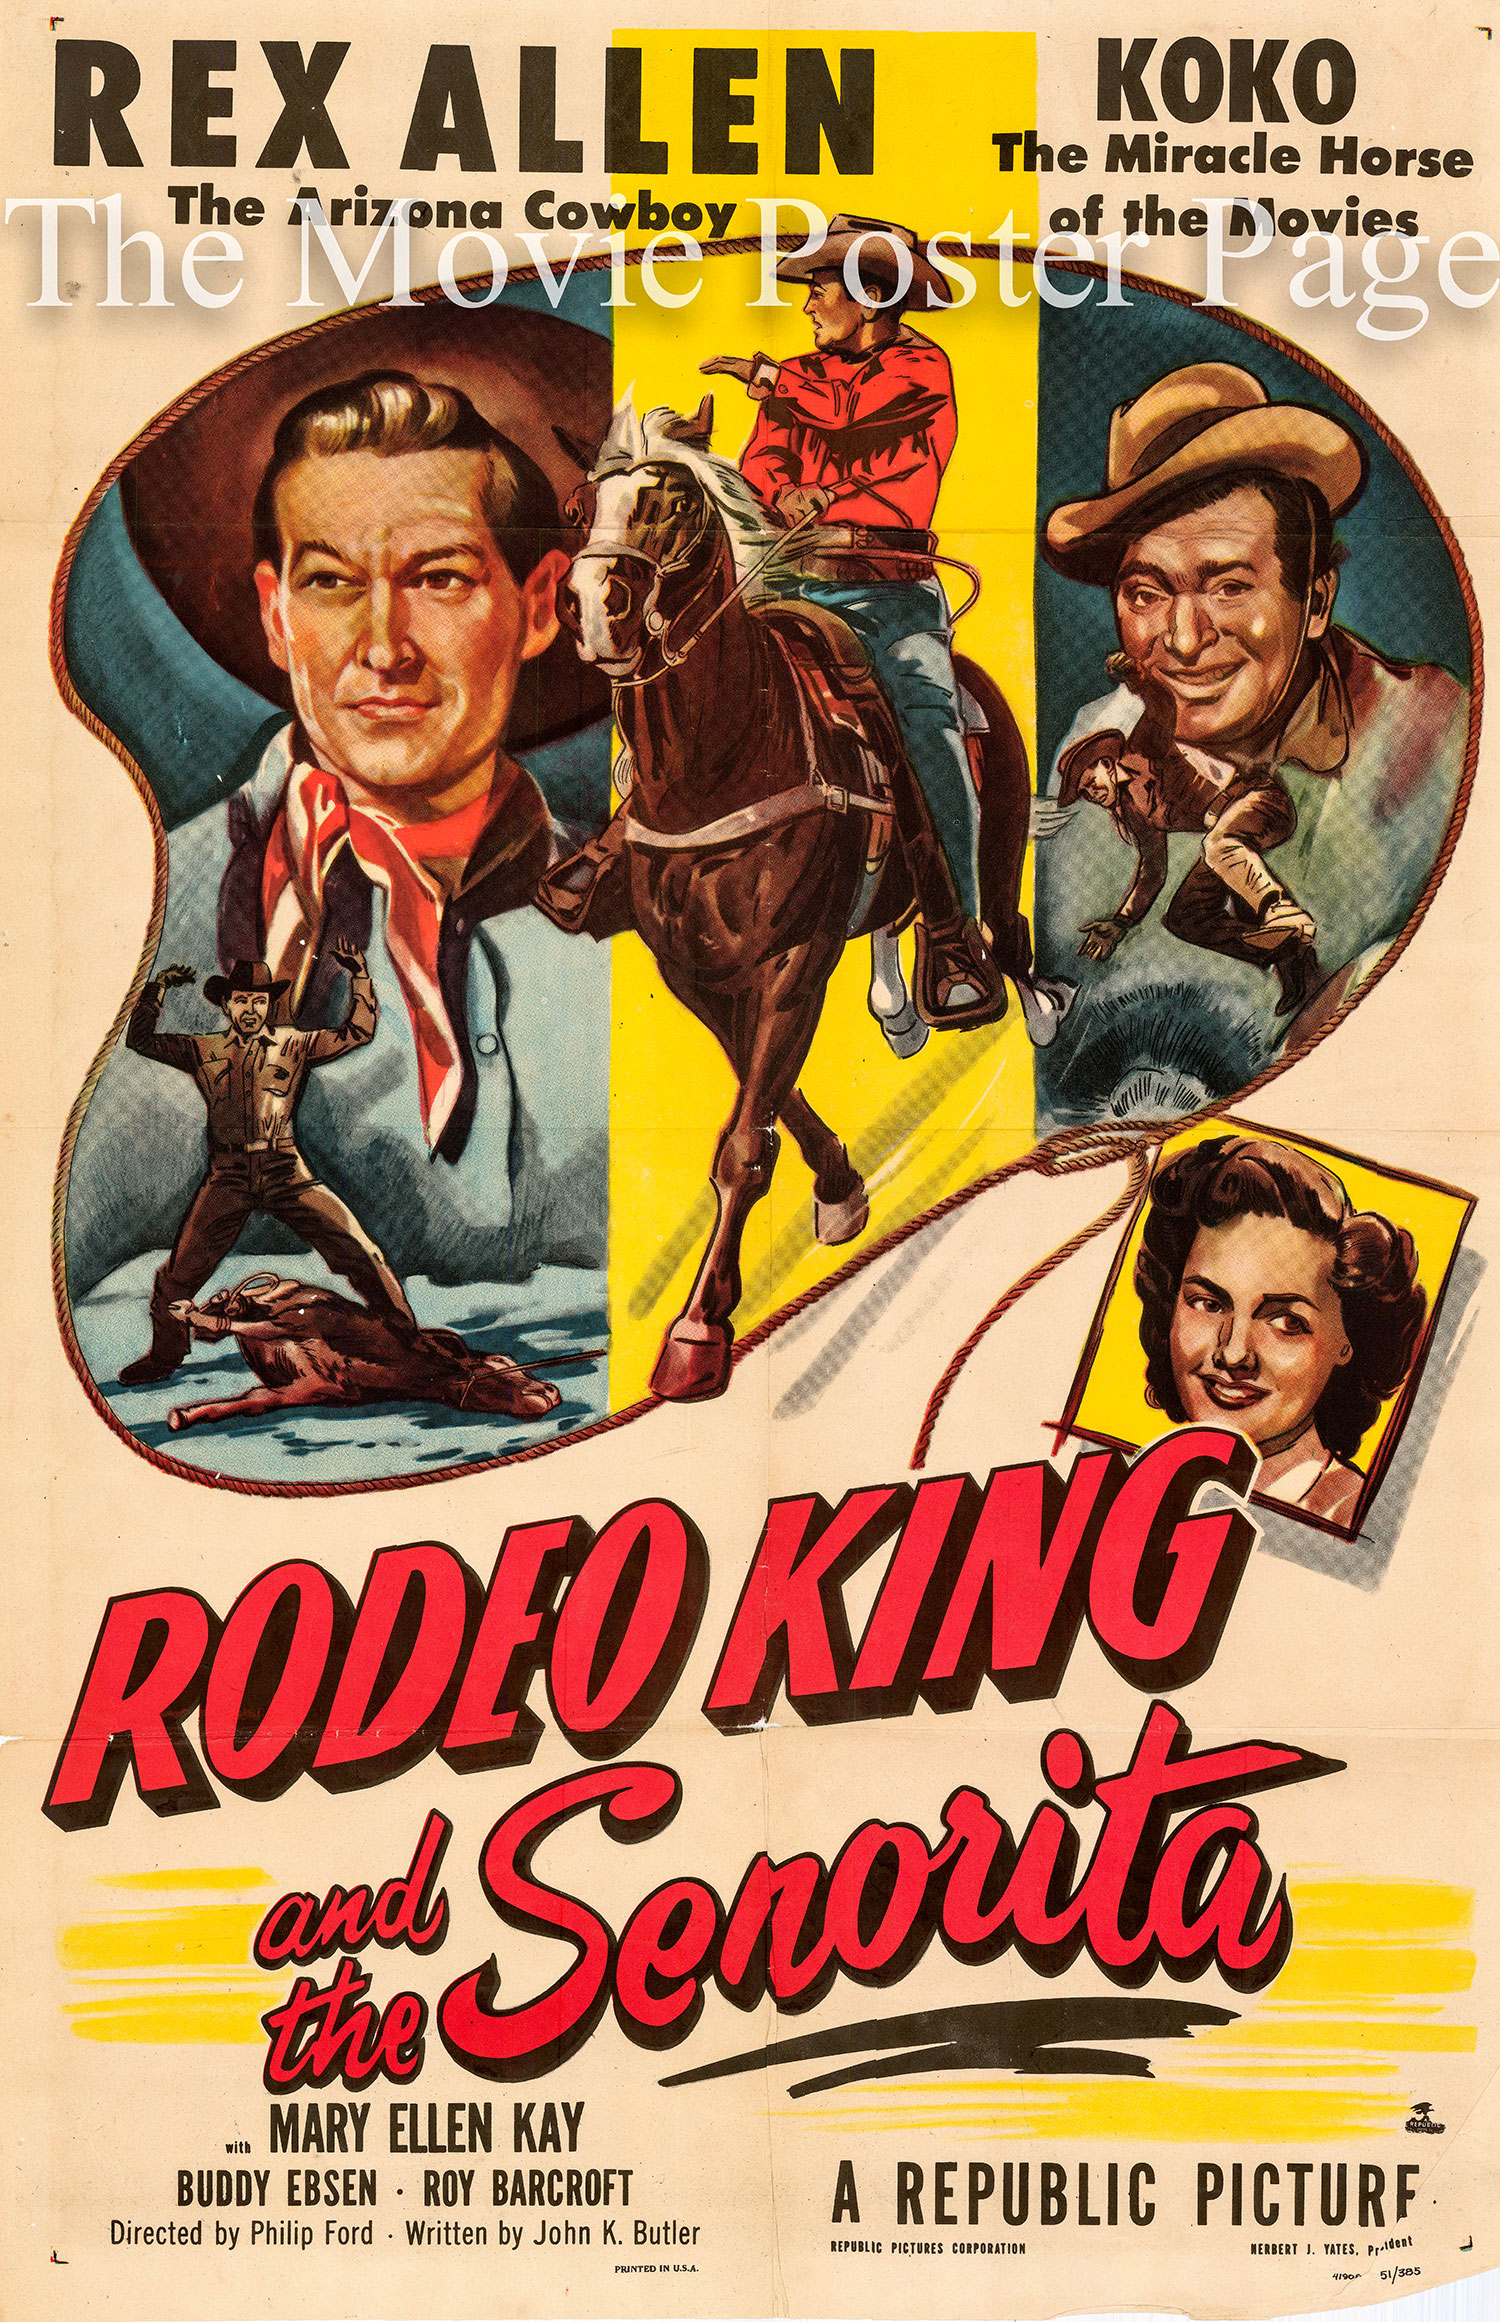 Pictured is a US one-sheet promotional poster for the 1951 Philip Ford film Rodeo King and the Senorita starring Rex Allen.